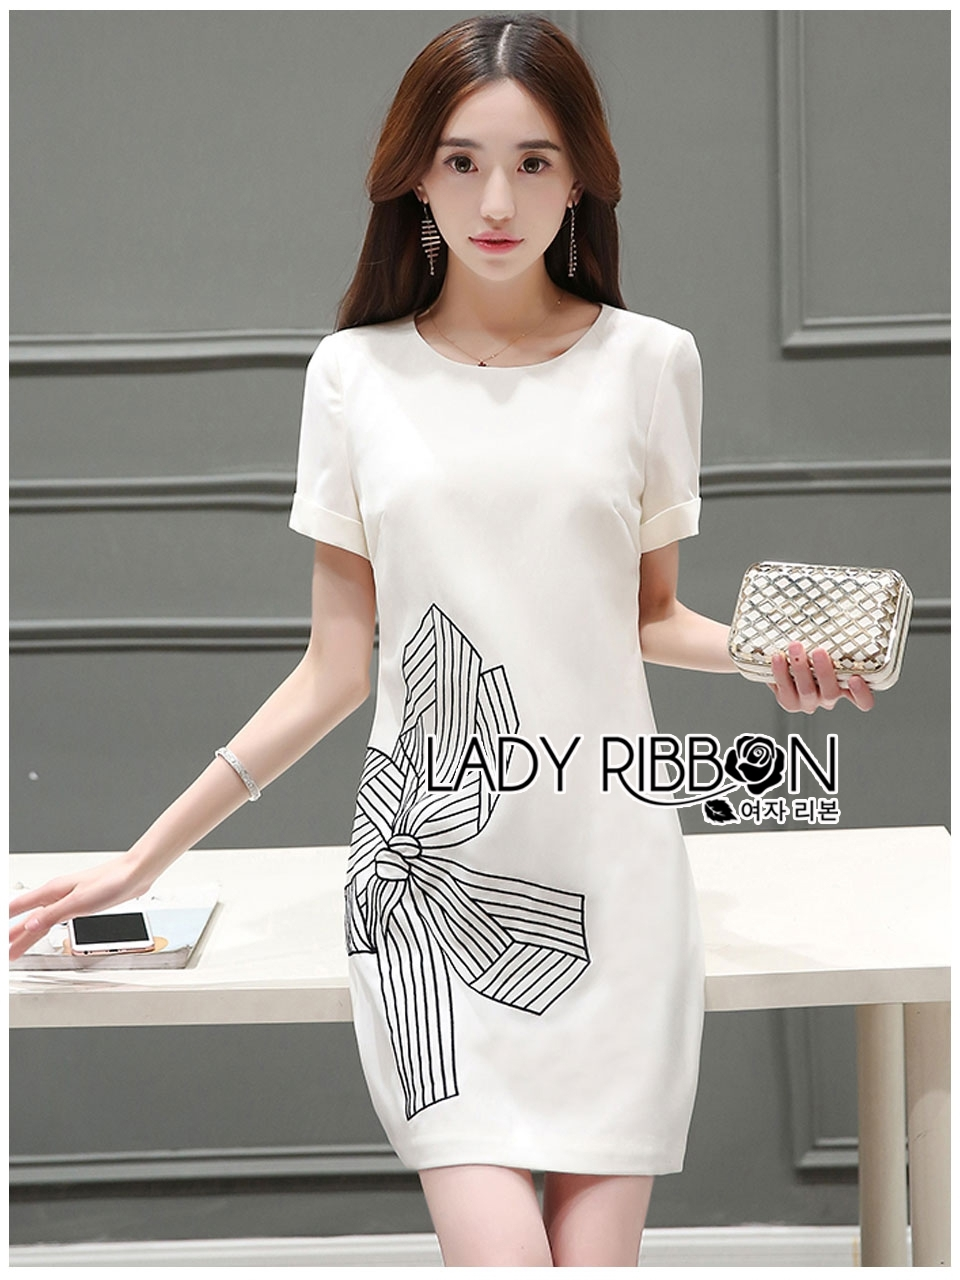 Lady Ribbon's Made Lady Carrie Smart Minimal Ribbon Embroidered White Dress